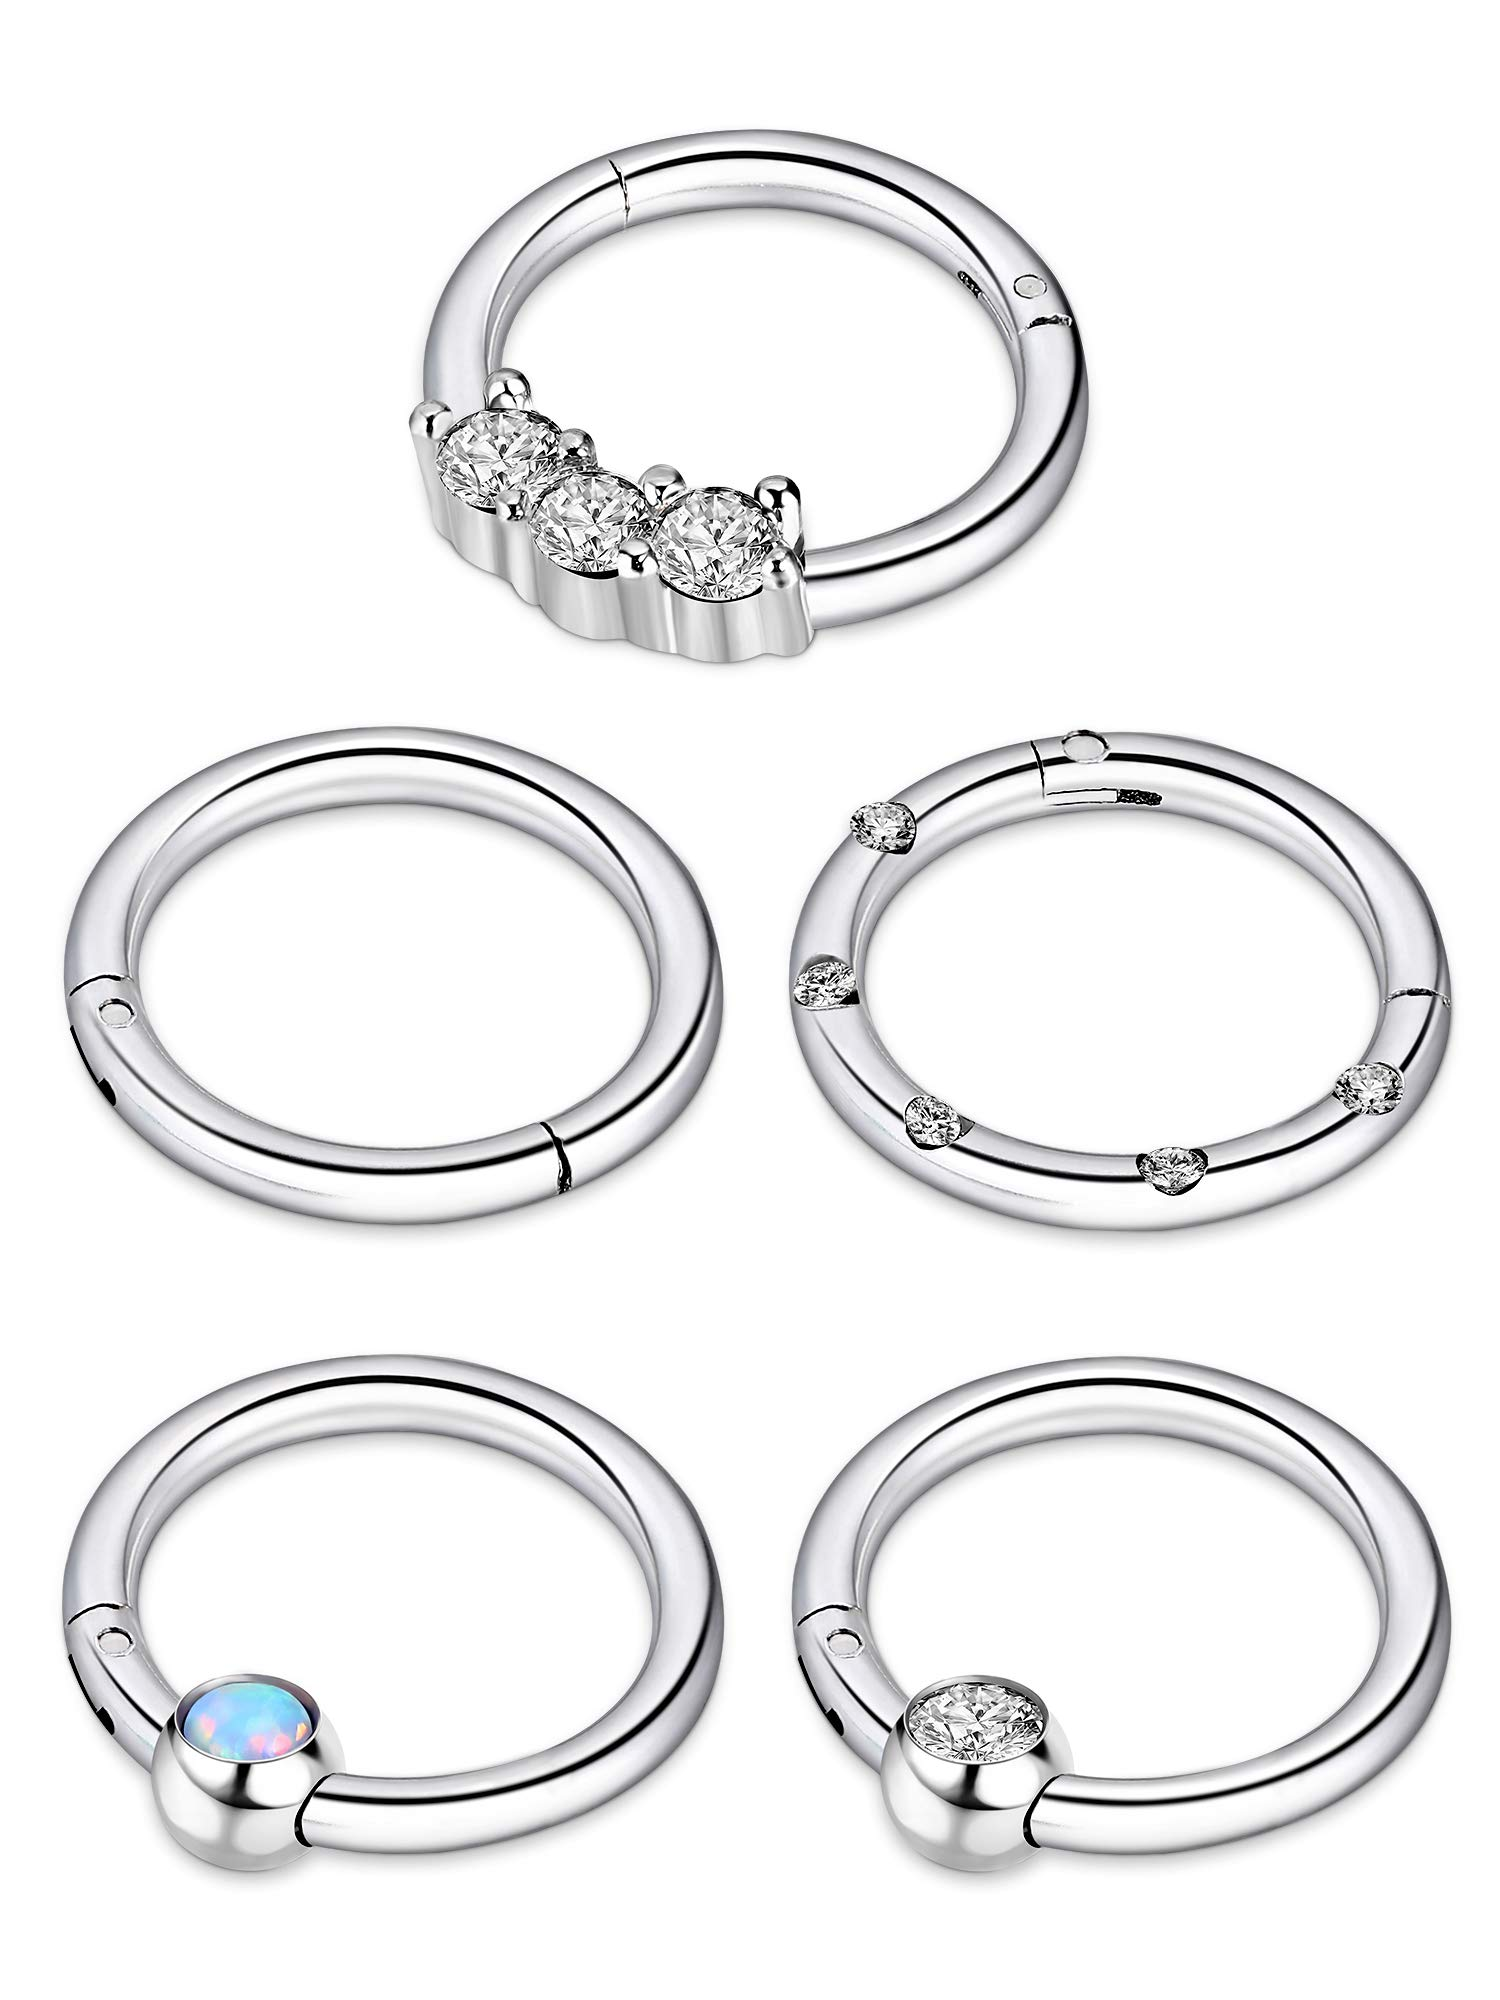 BBTO 5 Pieces 16G Stainless Steel Hinged Ring Nose Ring Opal Crystal CZ Nostril Lip Ear Piercings, 5 Styles (Silver)